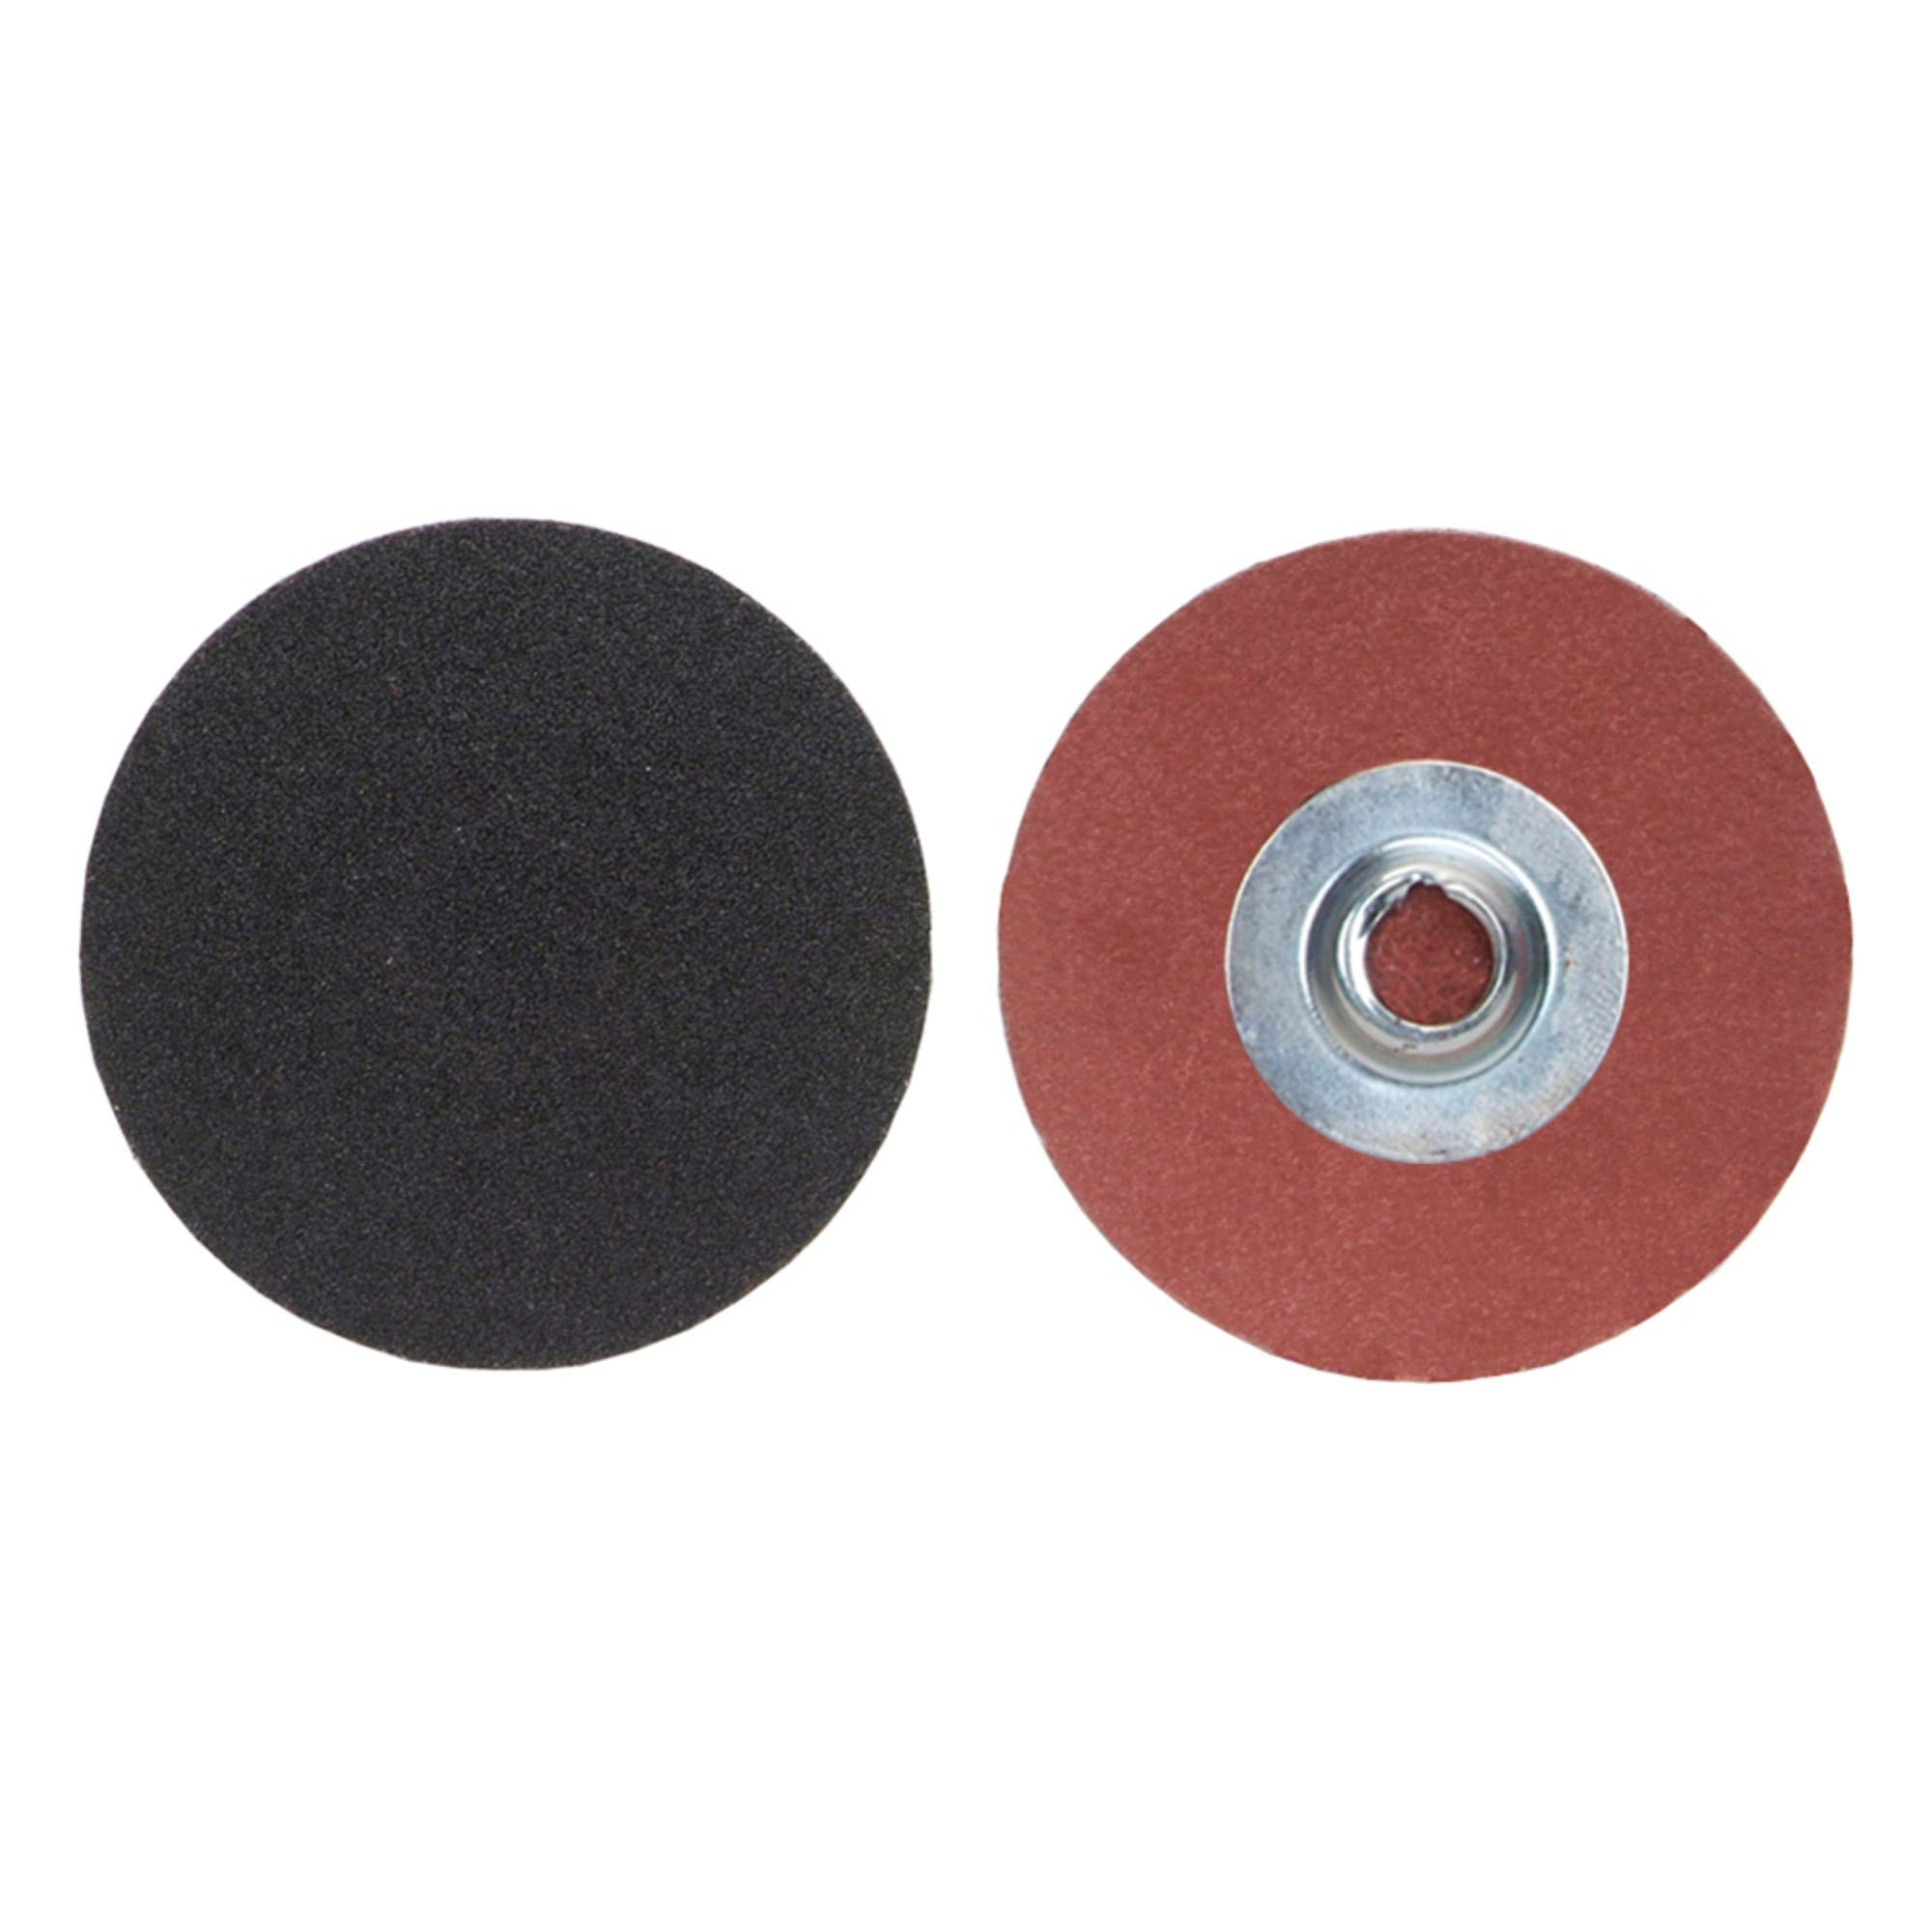 Merit PowerLock Abrasive Disc, Cloth Backing, Type II, Silicon Carbide, 2'' Diameter, Grit 60 (Box of 100) by Merit